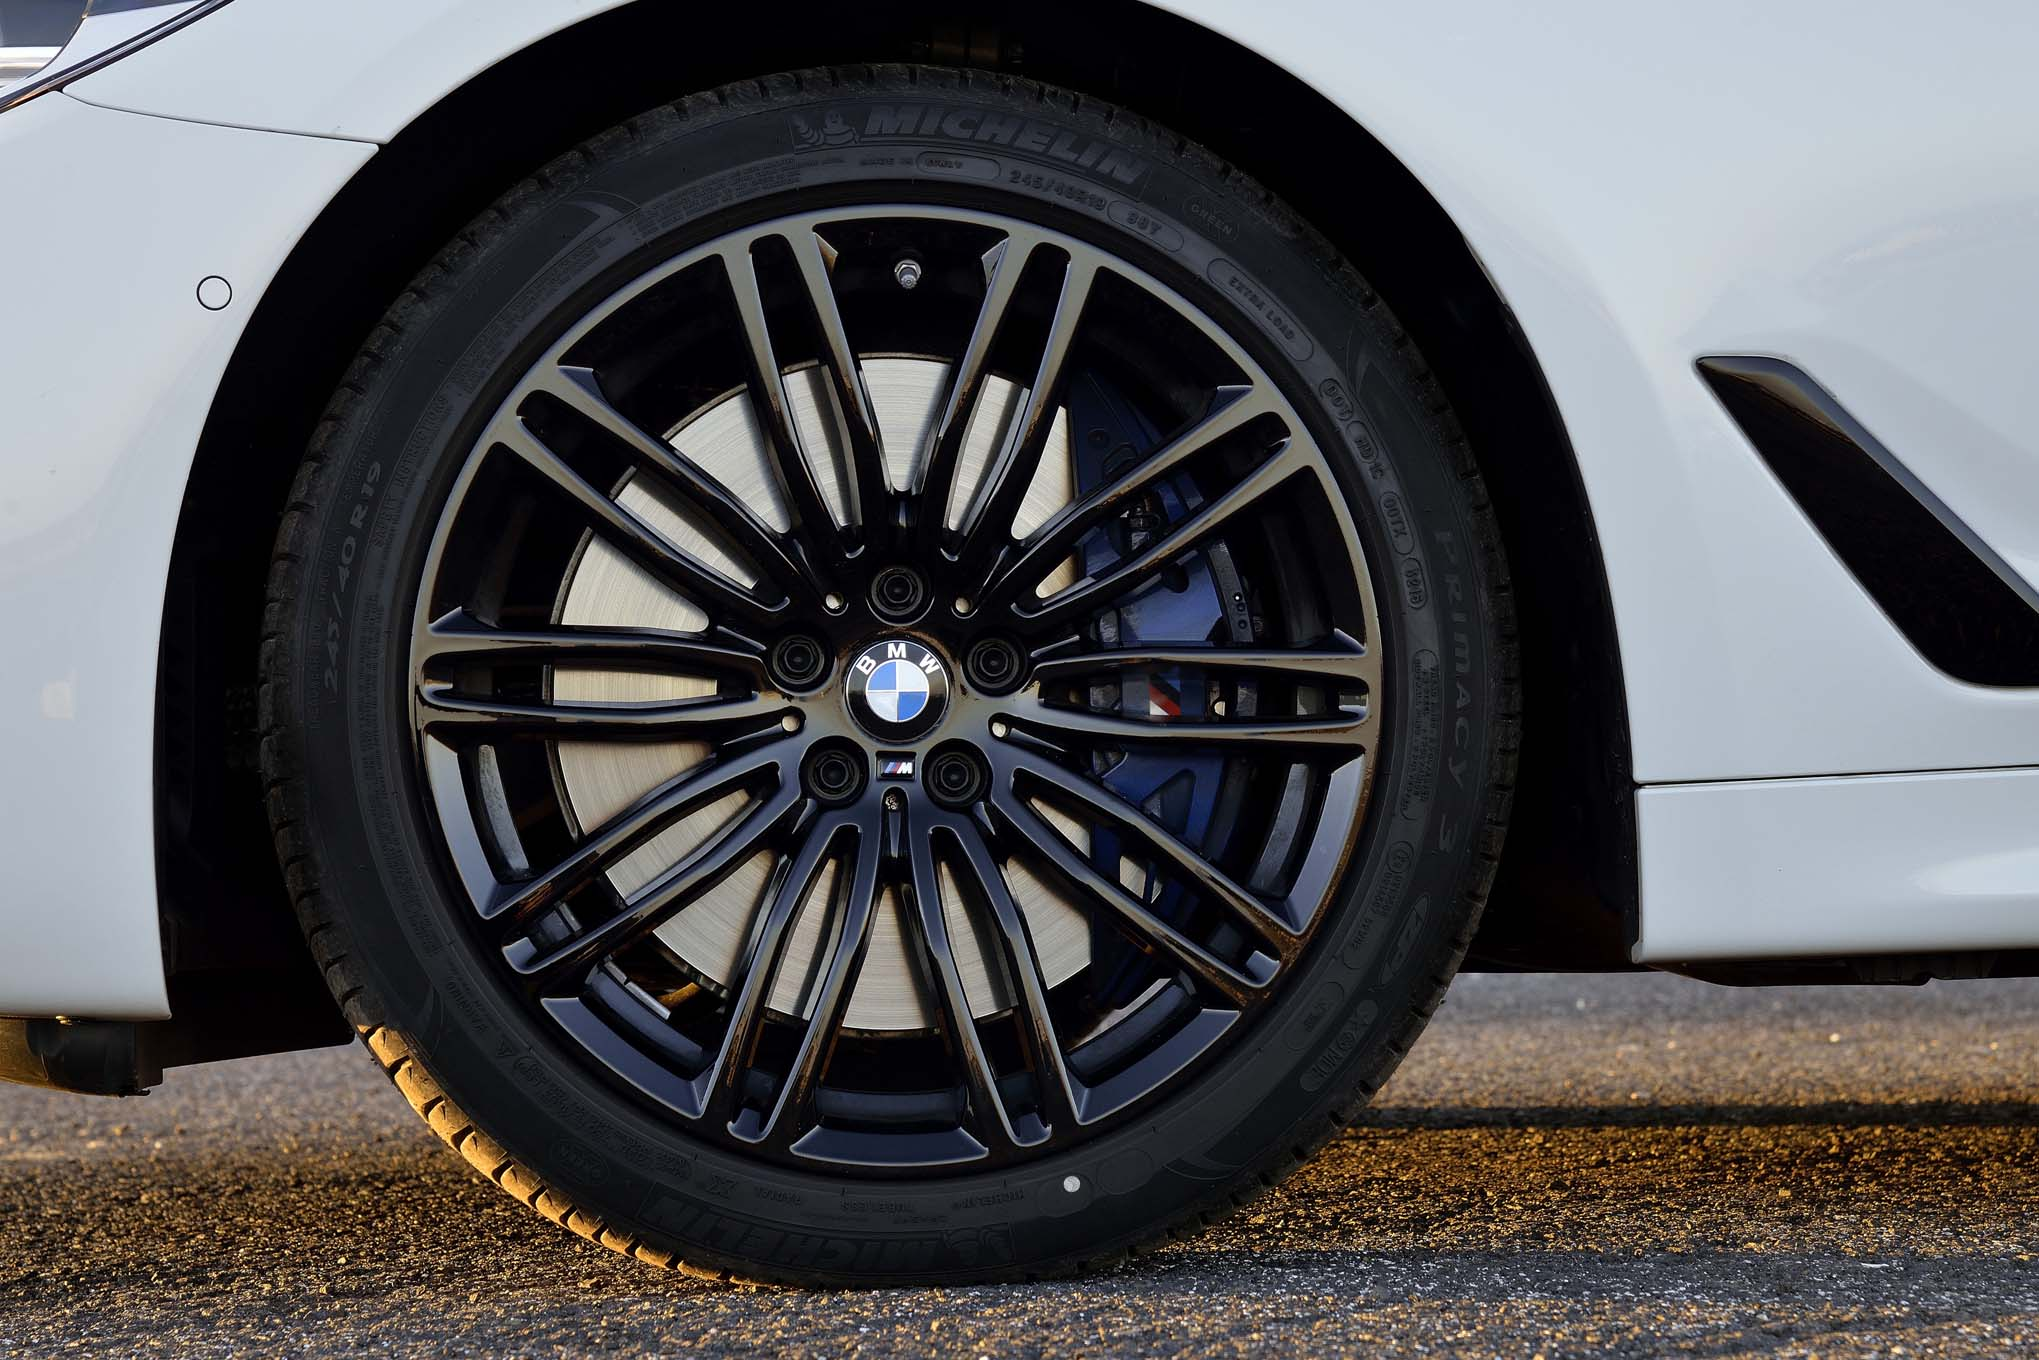 2017 BMW 540i M Sport Exterior View Wheel (Photo 14 of 35)